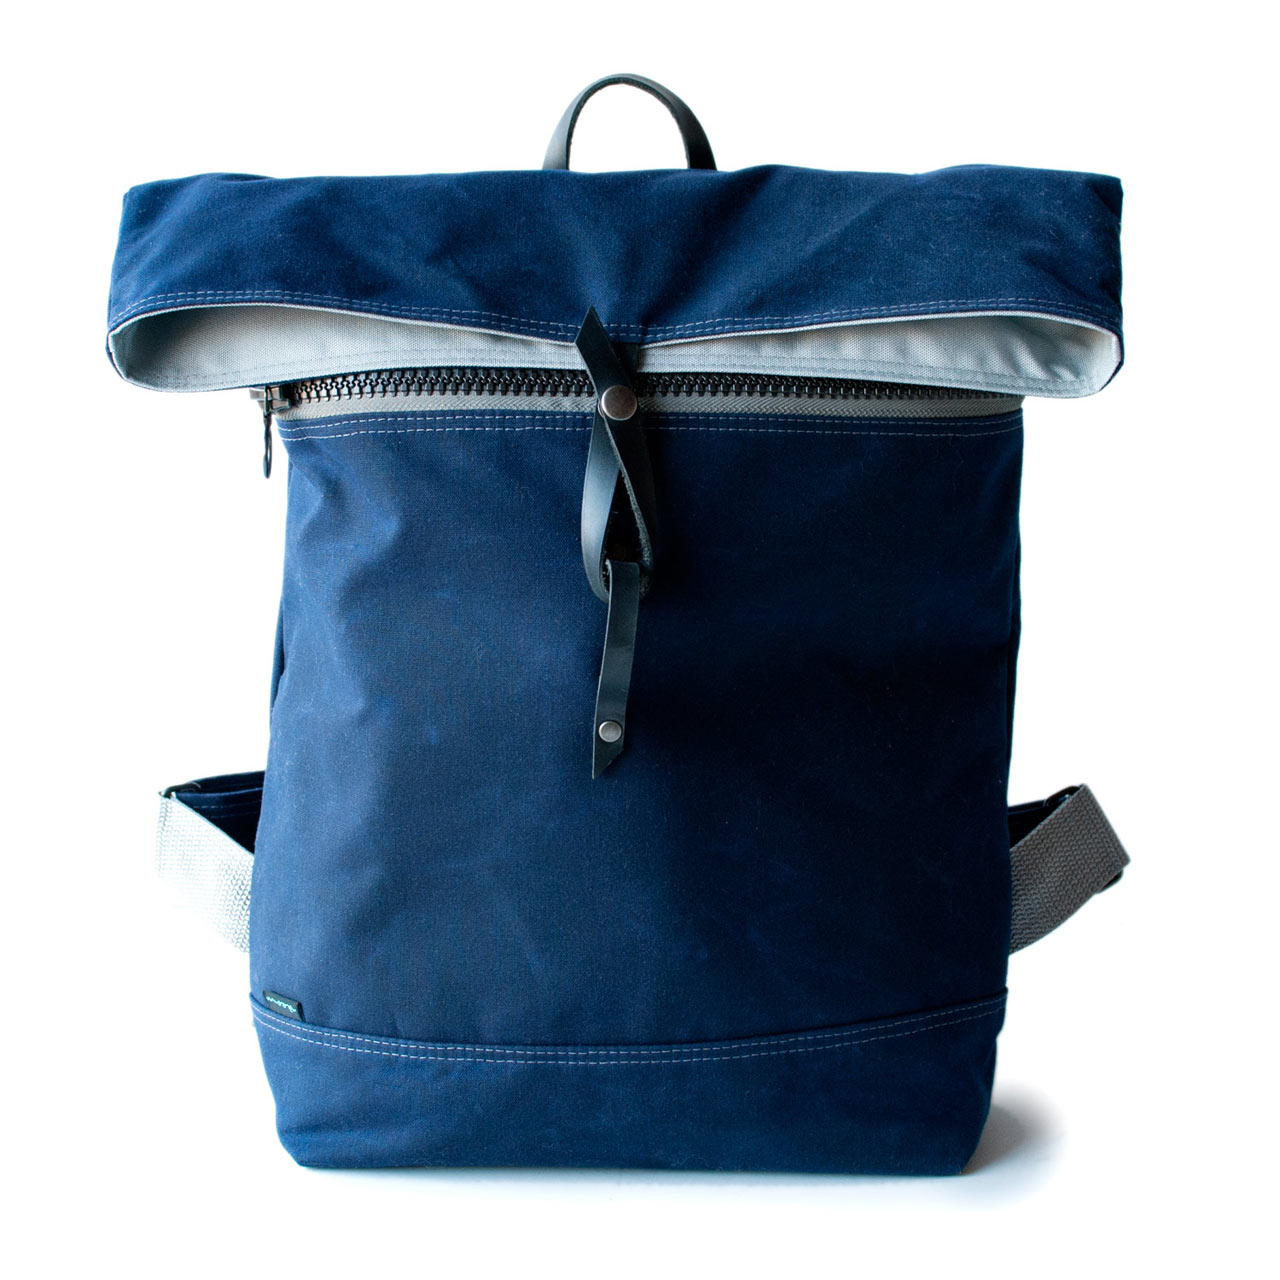 moop-backpack-no2-navy